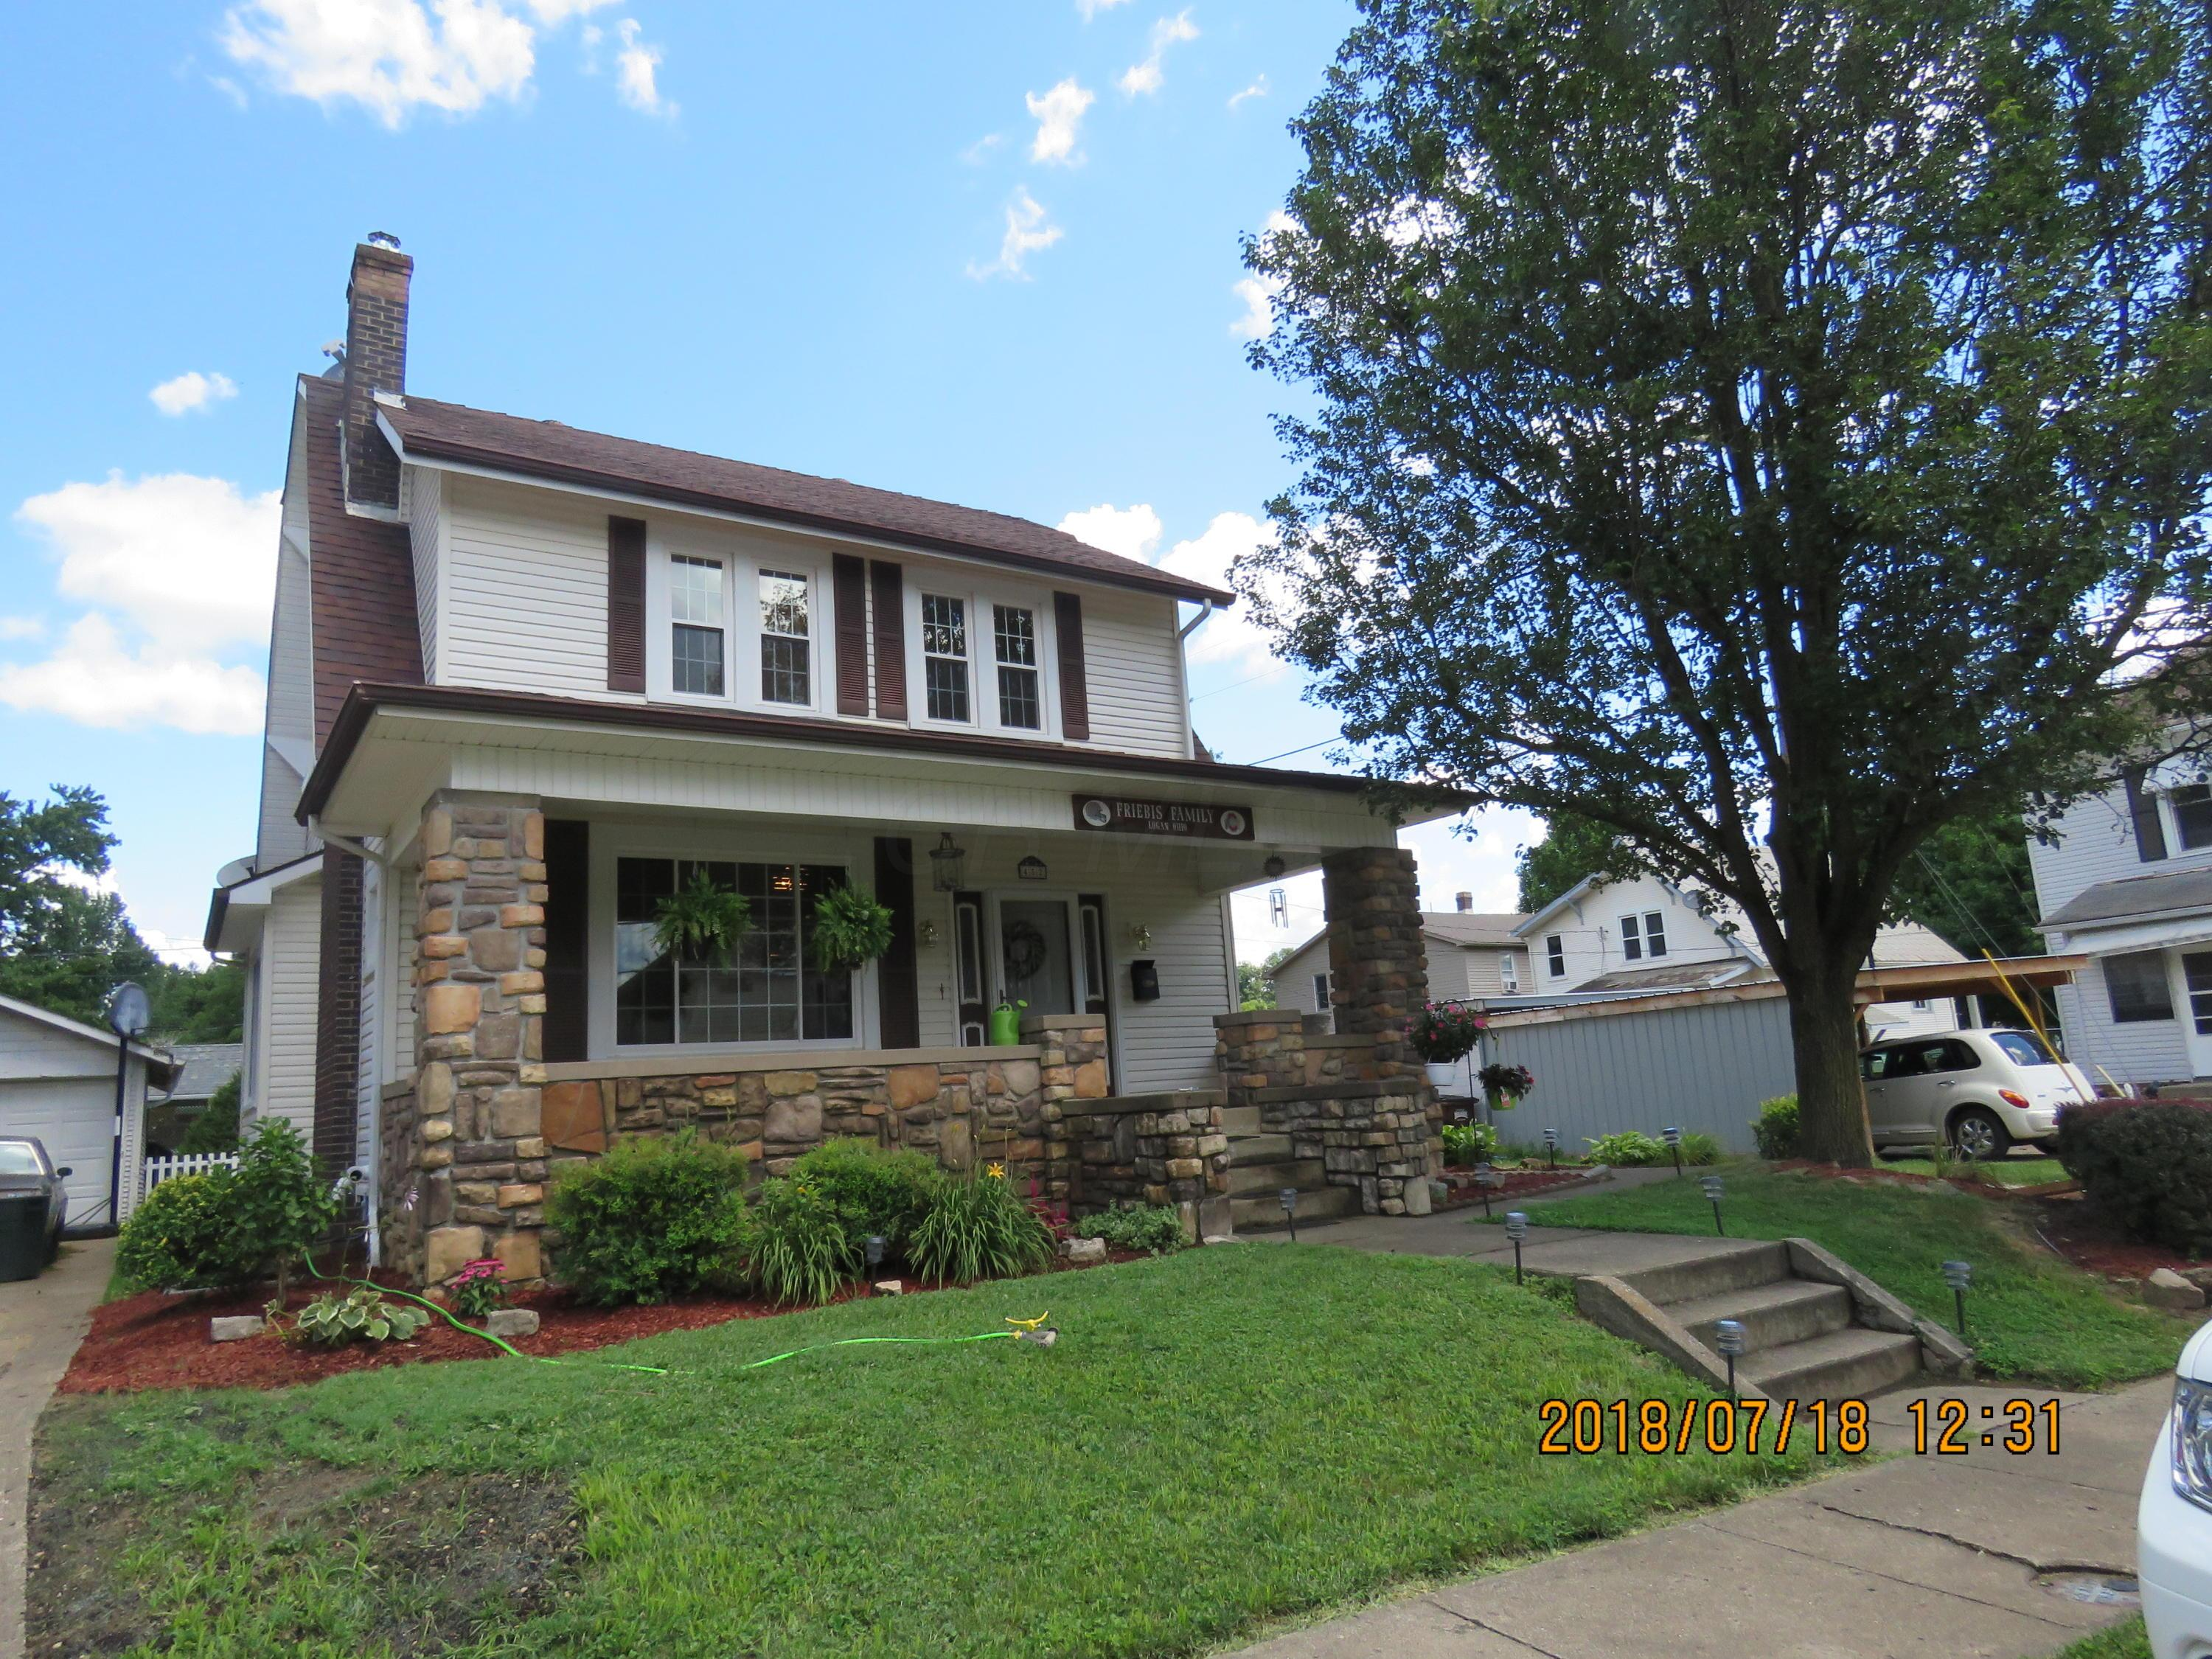 452 Poplar Street Logan Home Listings - Sandy Maniskas Realtors Hocking Hills and Logan Ohio Real Estate